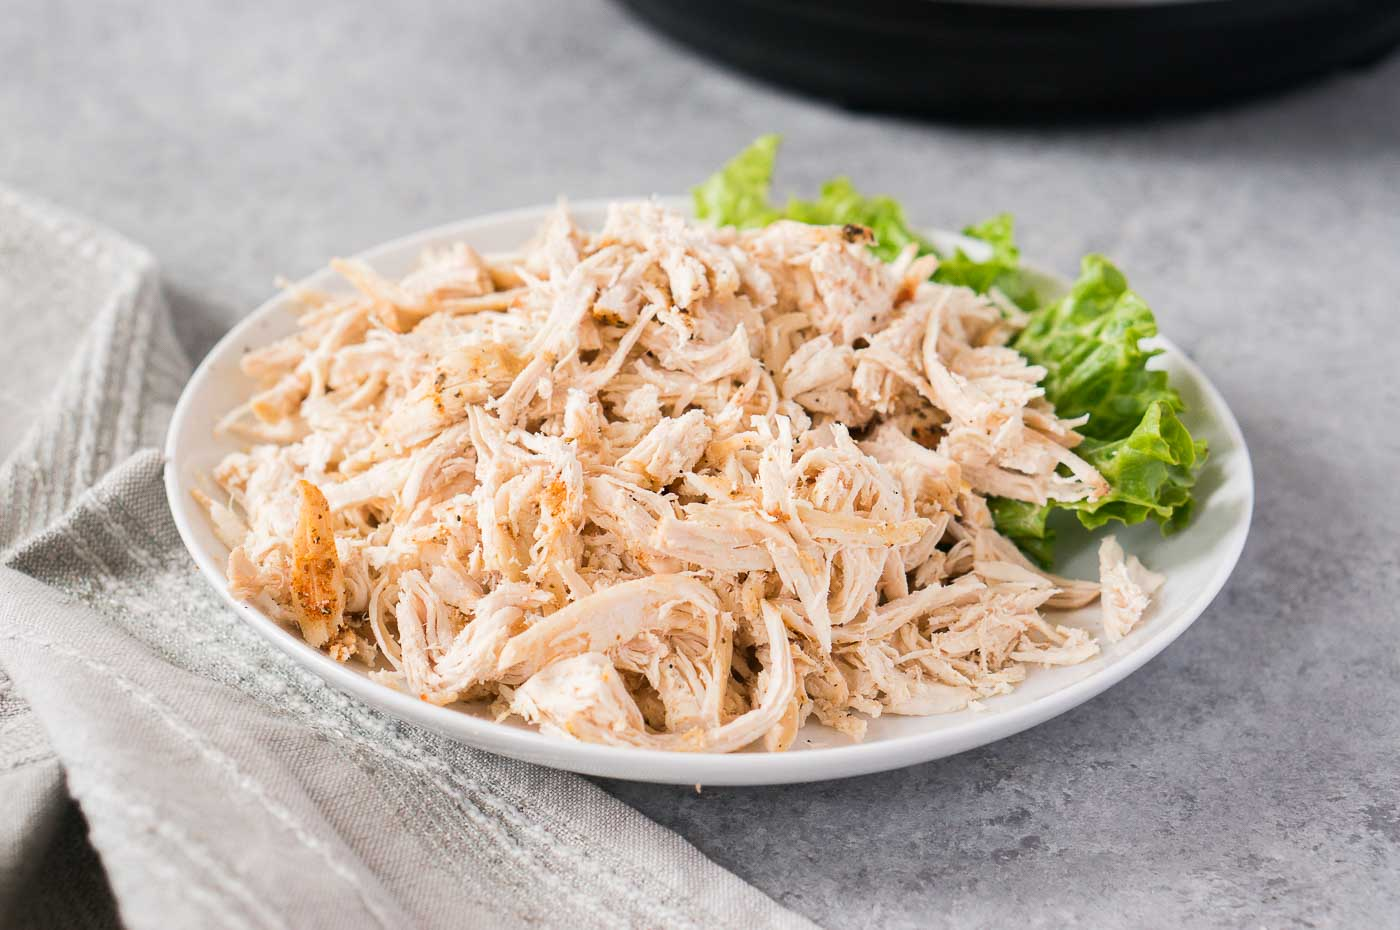 pressure cooker shredded chicken made in the instant pot